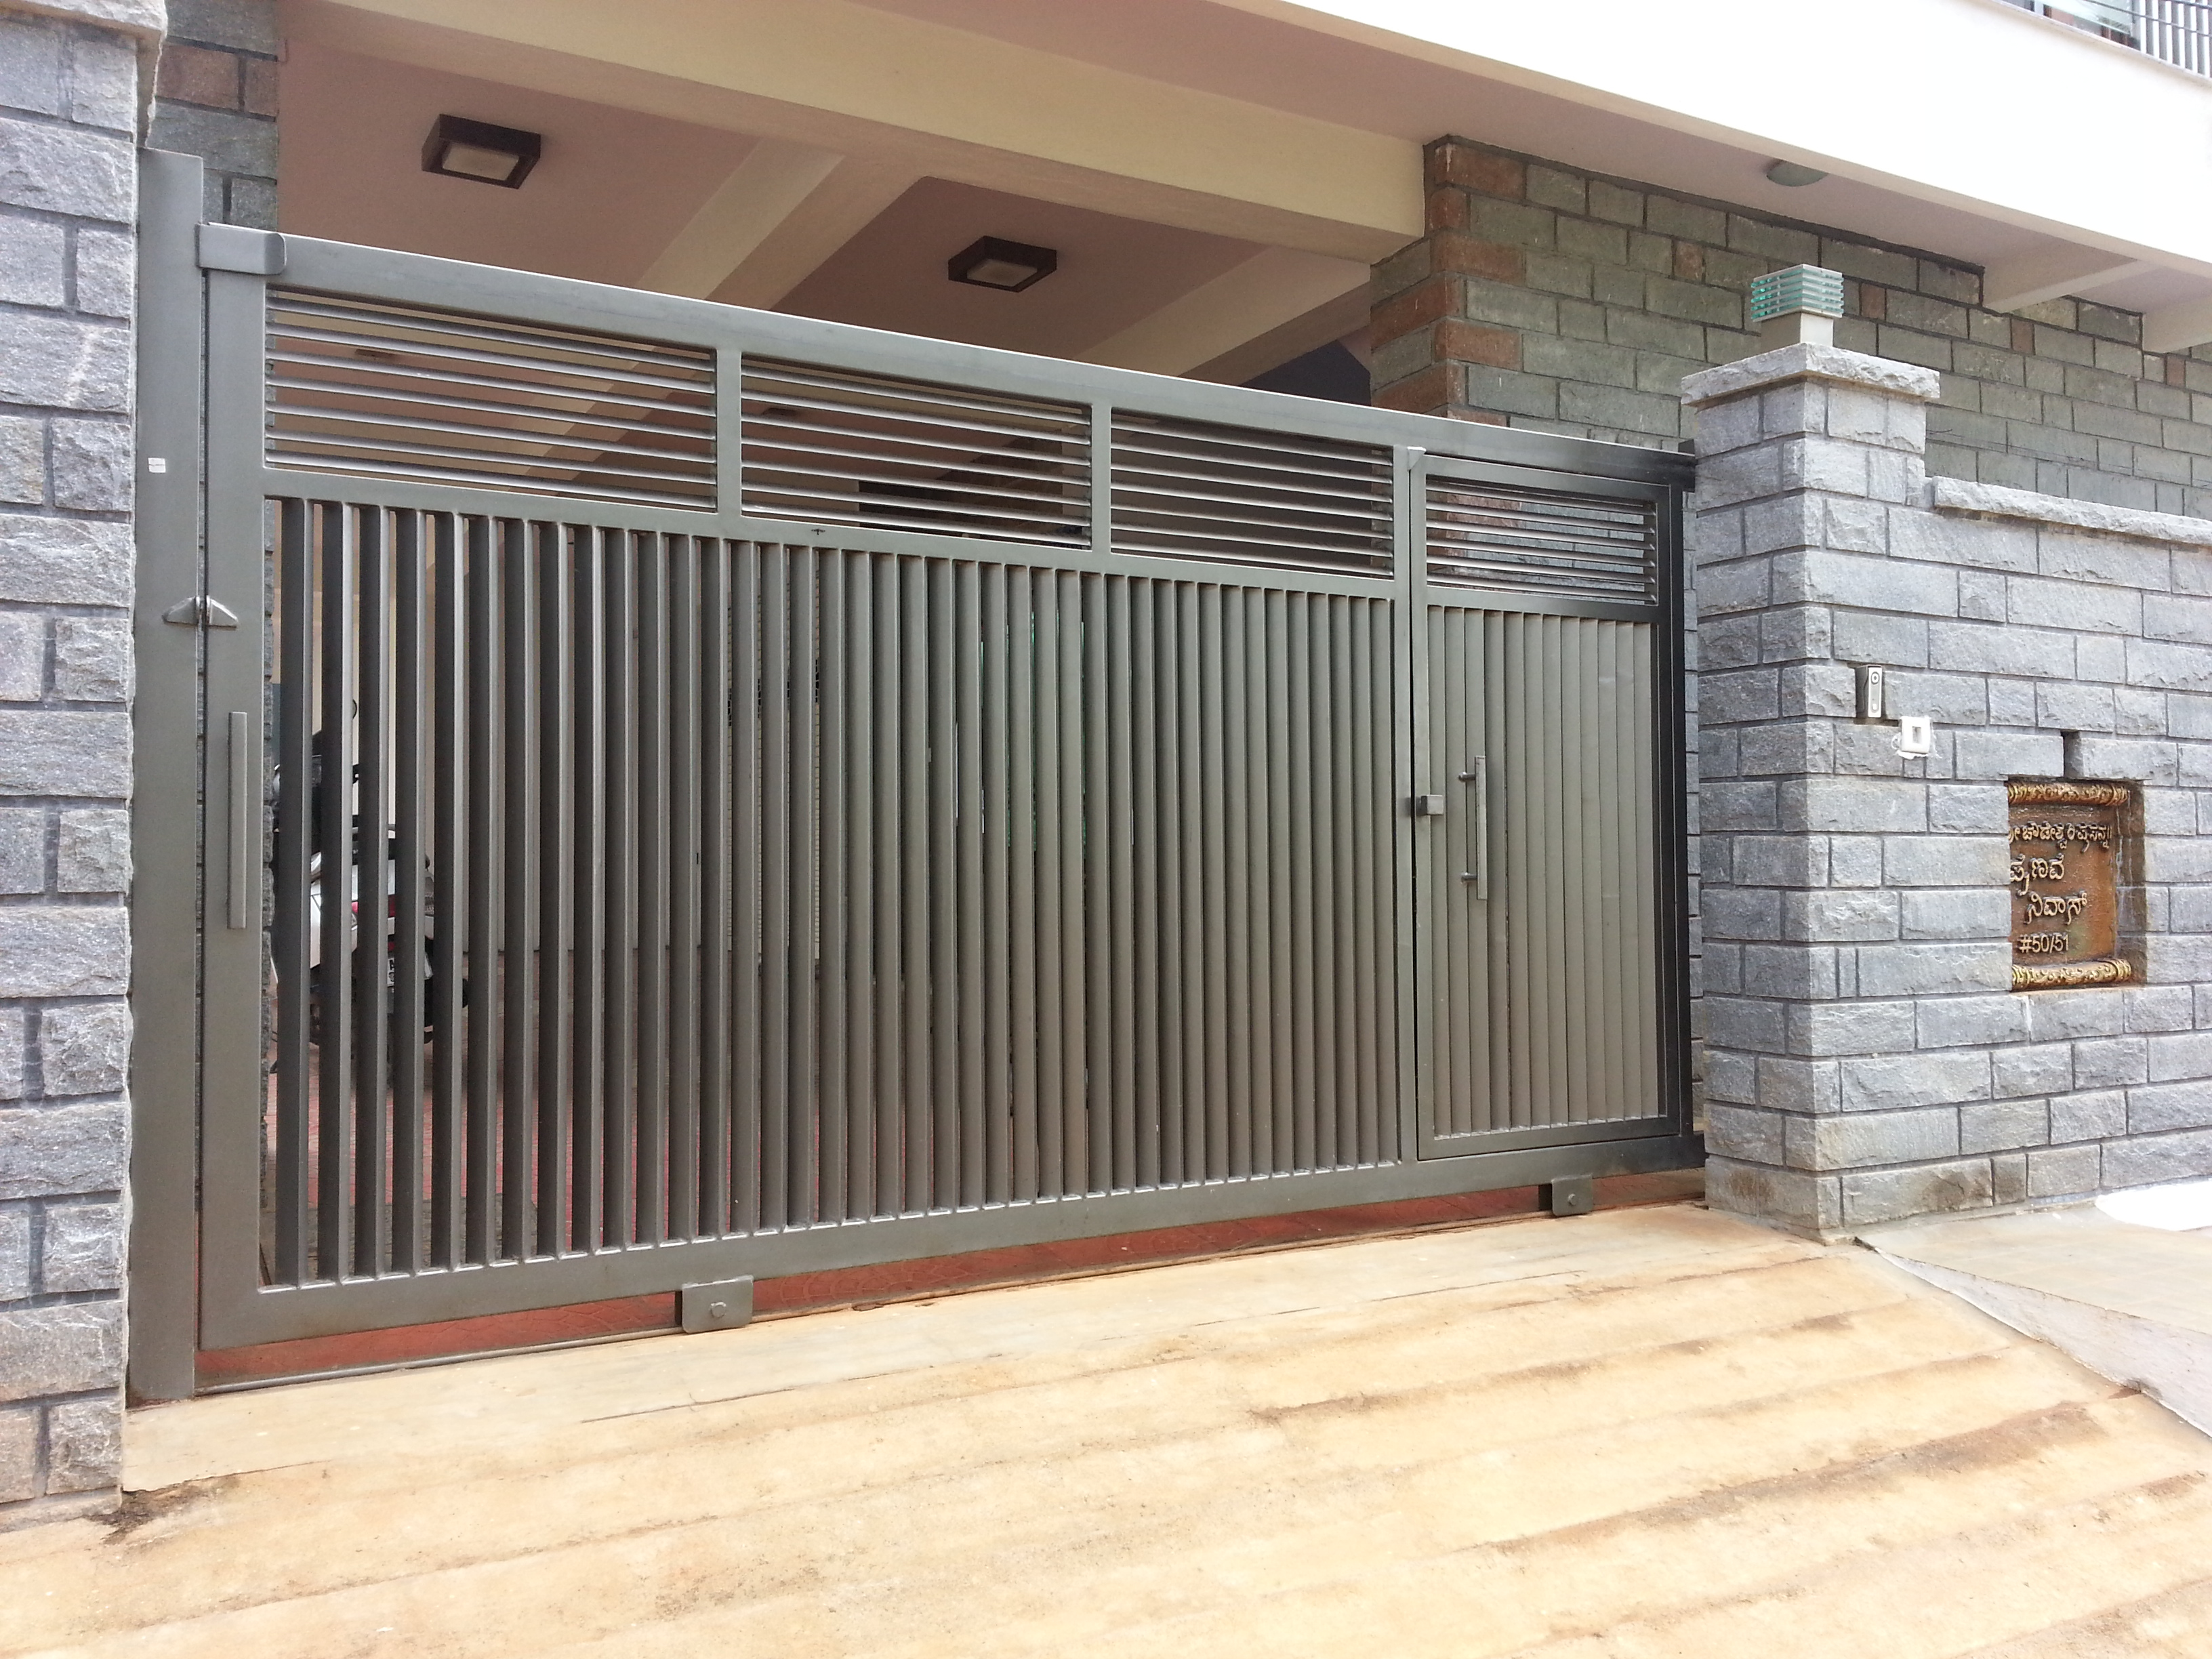 automatic tilt garage door btca info examples doors designs 24484265194849203264 systems for automatic sliding gates tilt up doors garage doors 8d6e3e automatic tilt garage